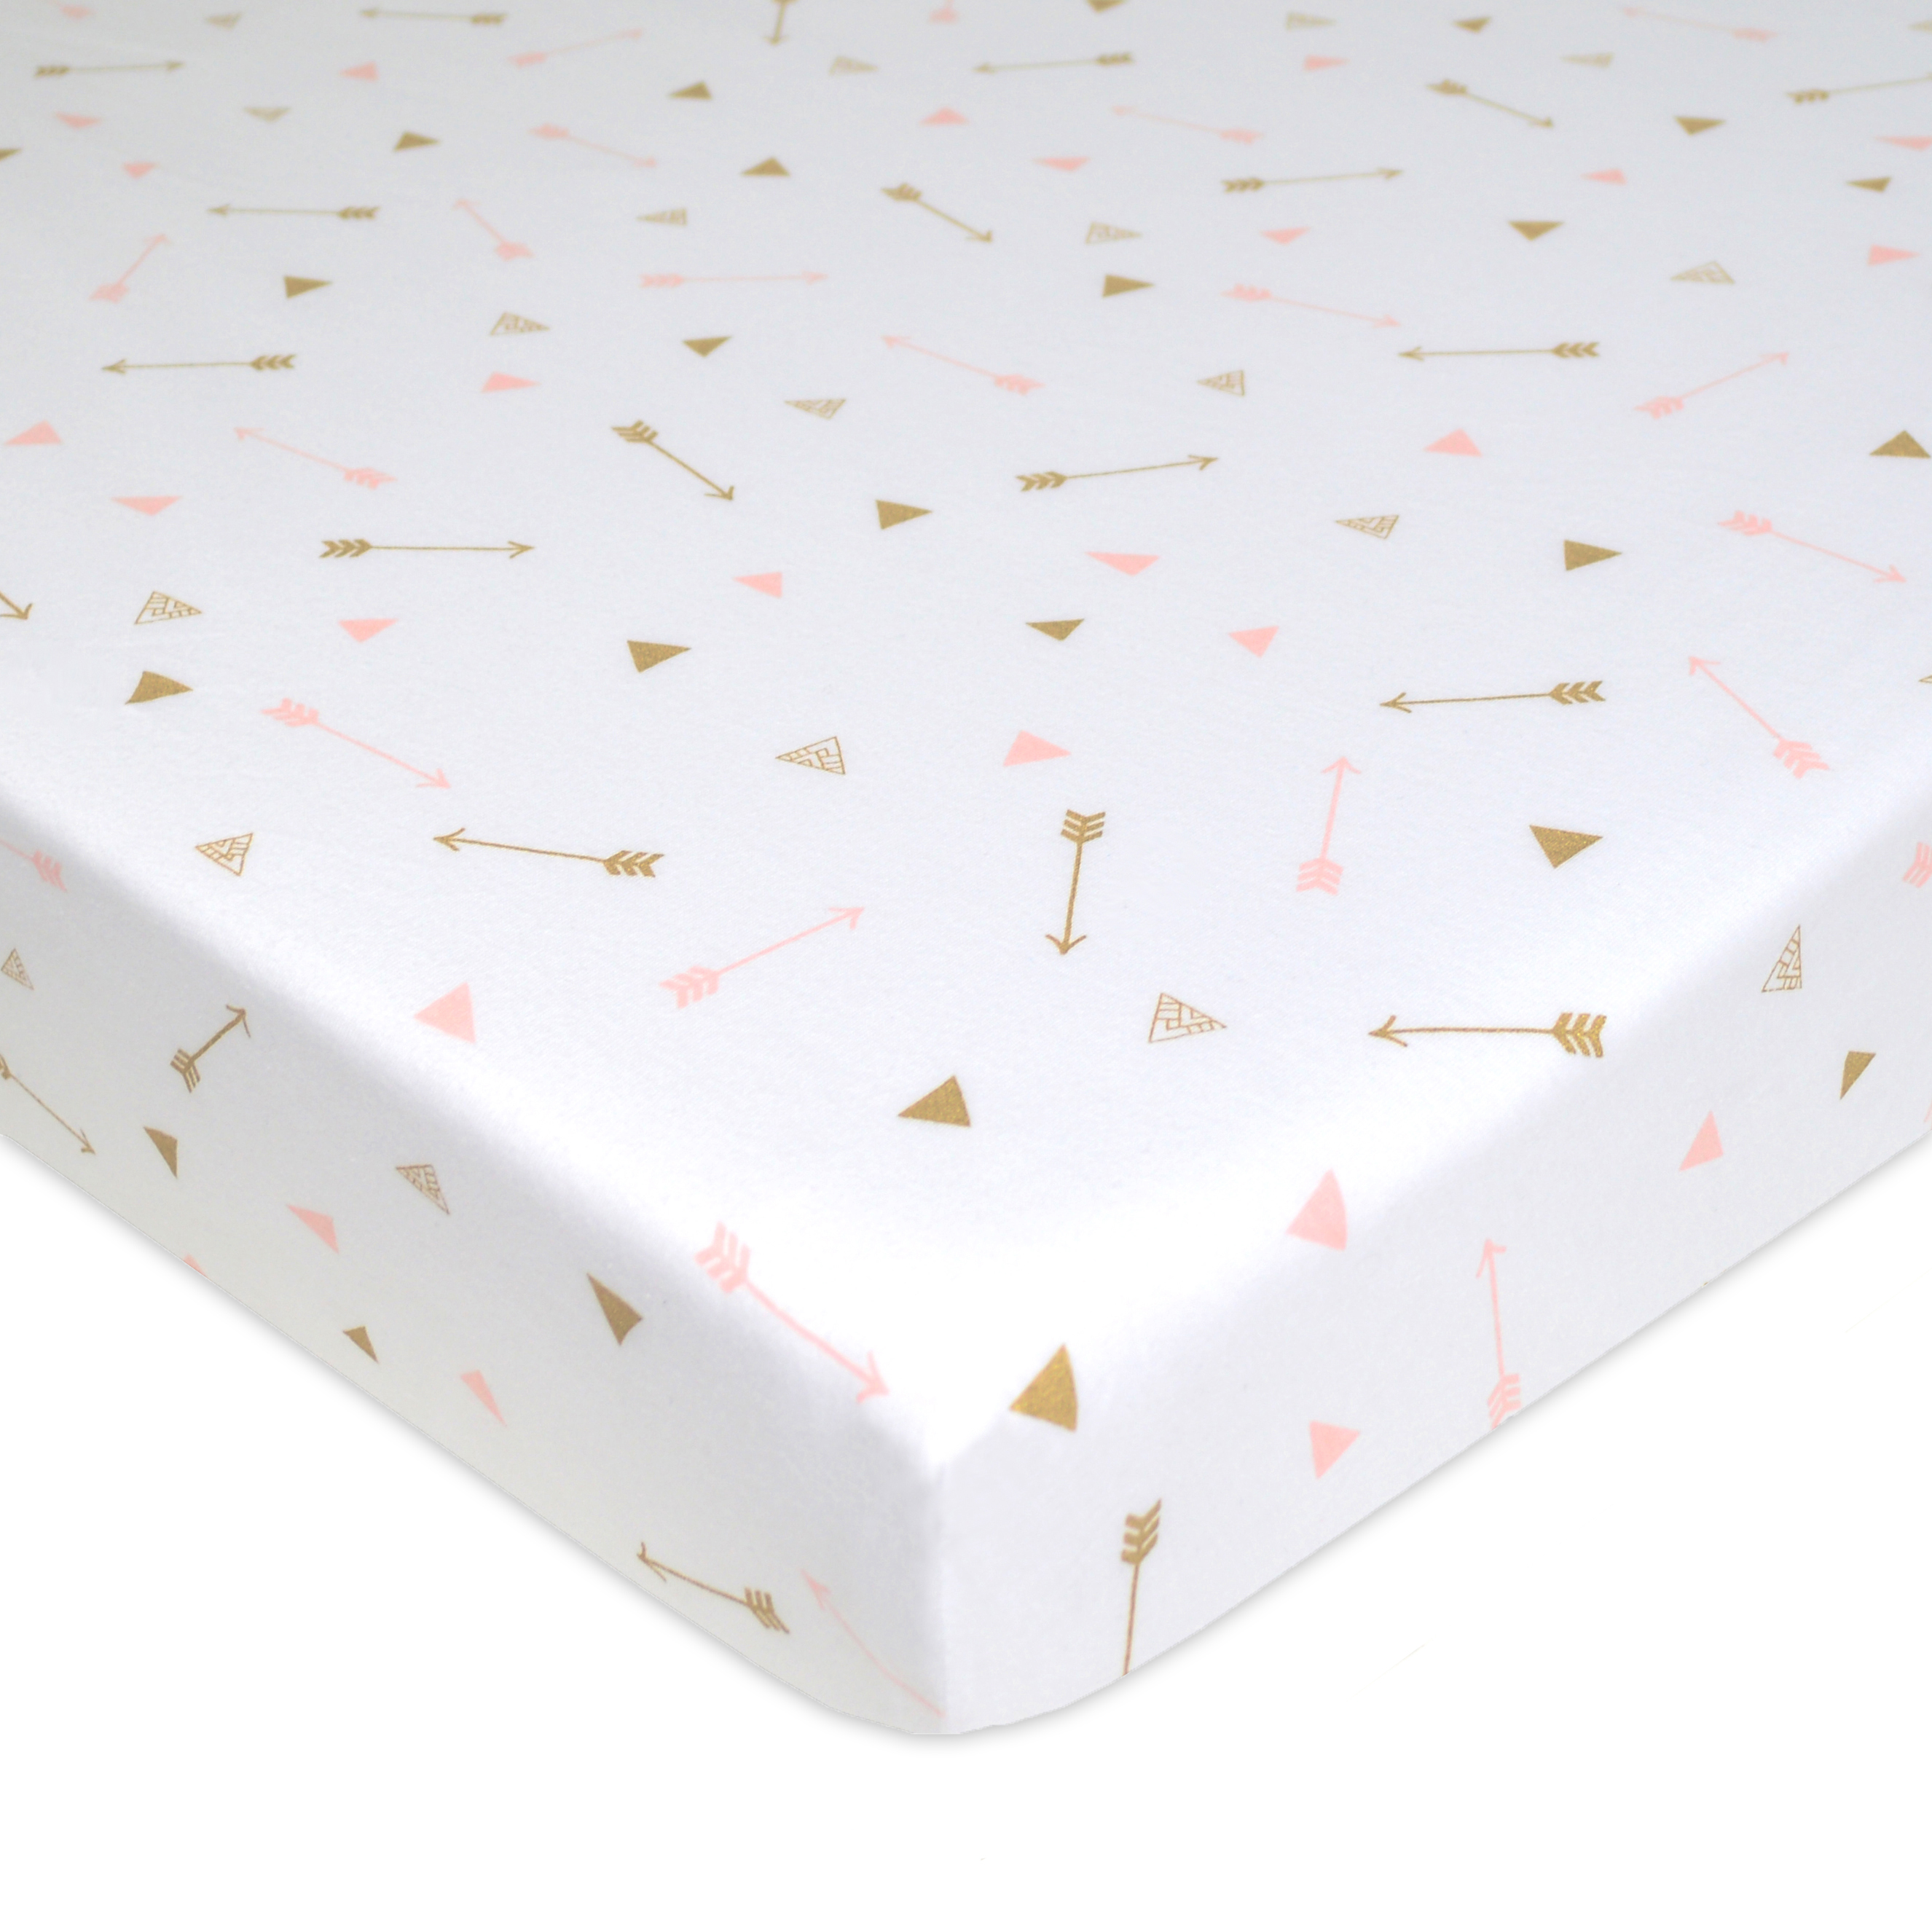 American Baby Company 100% Cotton Jersey Fitted Playard Sheet, Sparkle Gold and Pink Arrows